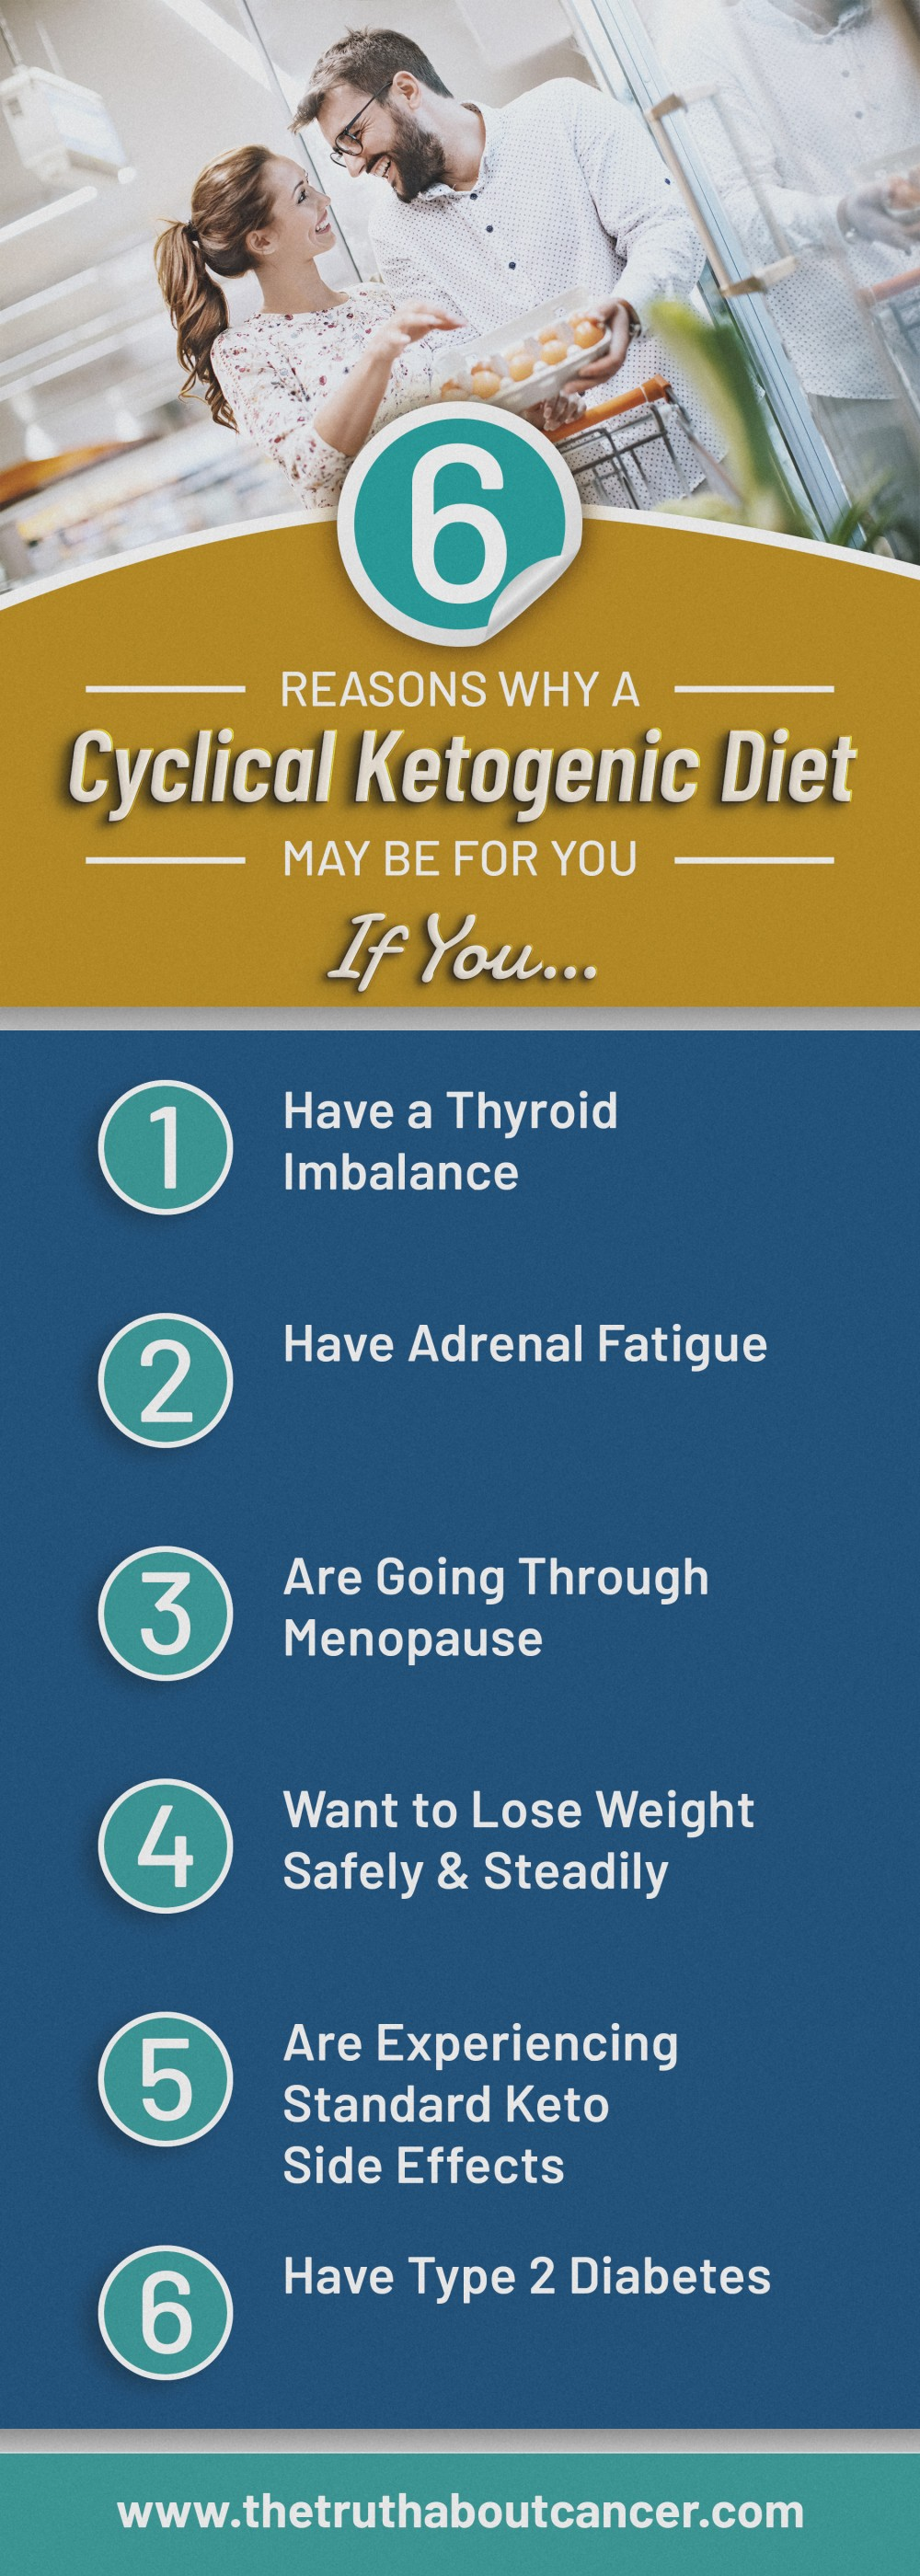 6 reasons why a cyclical ketogenic diet may be for you